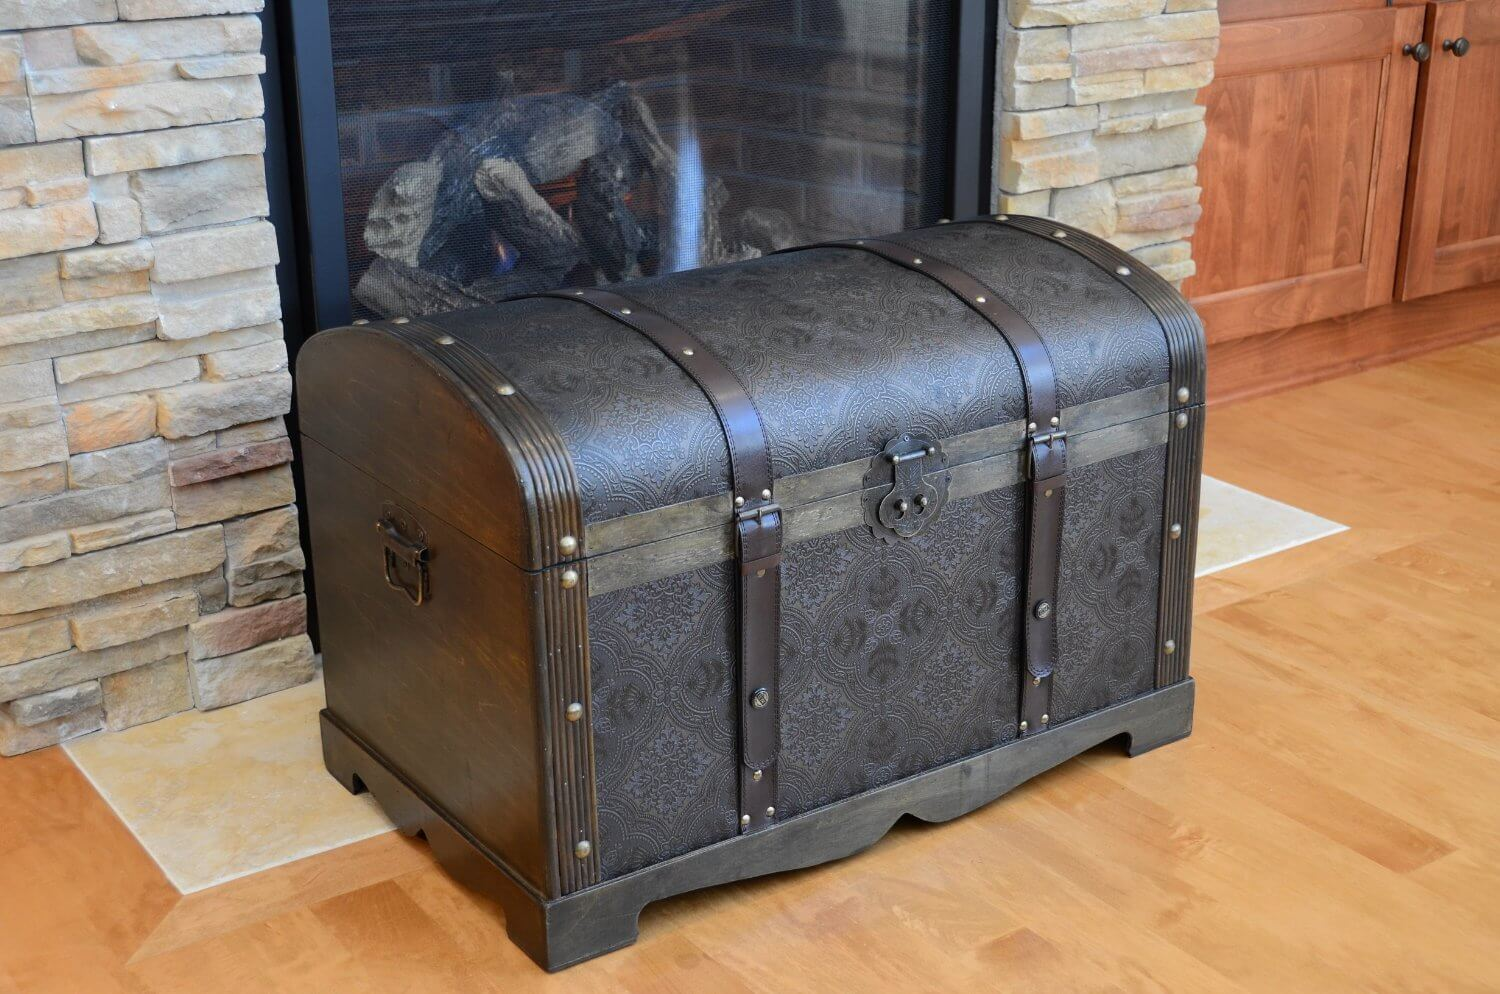 This trunk has a classic curved top with wooden sides and tooled leather. It even includes buckles!